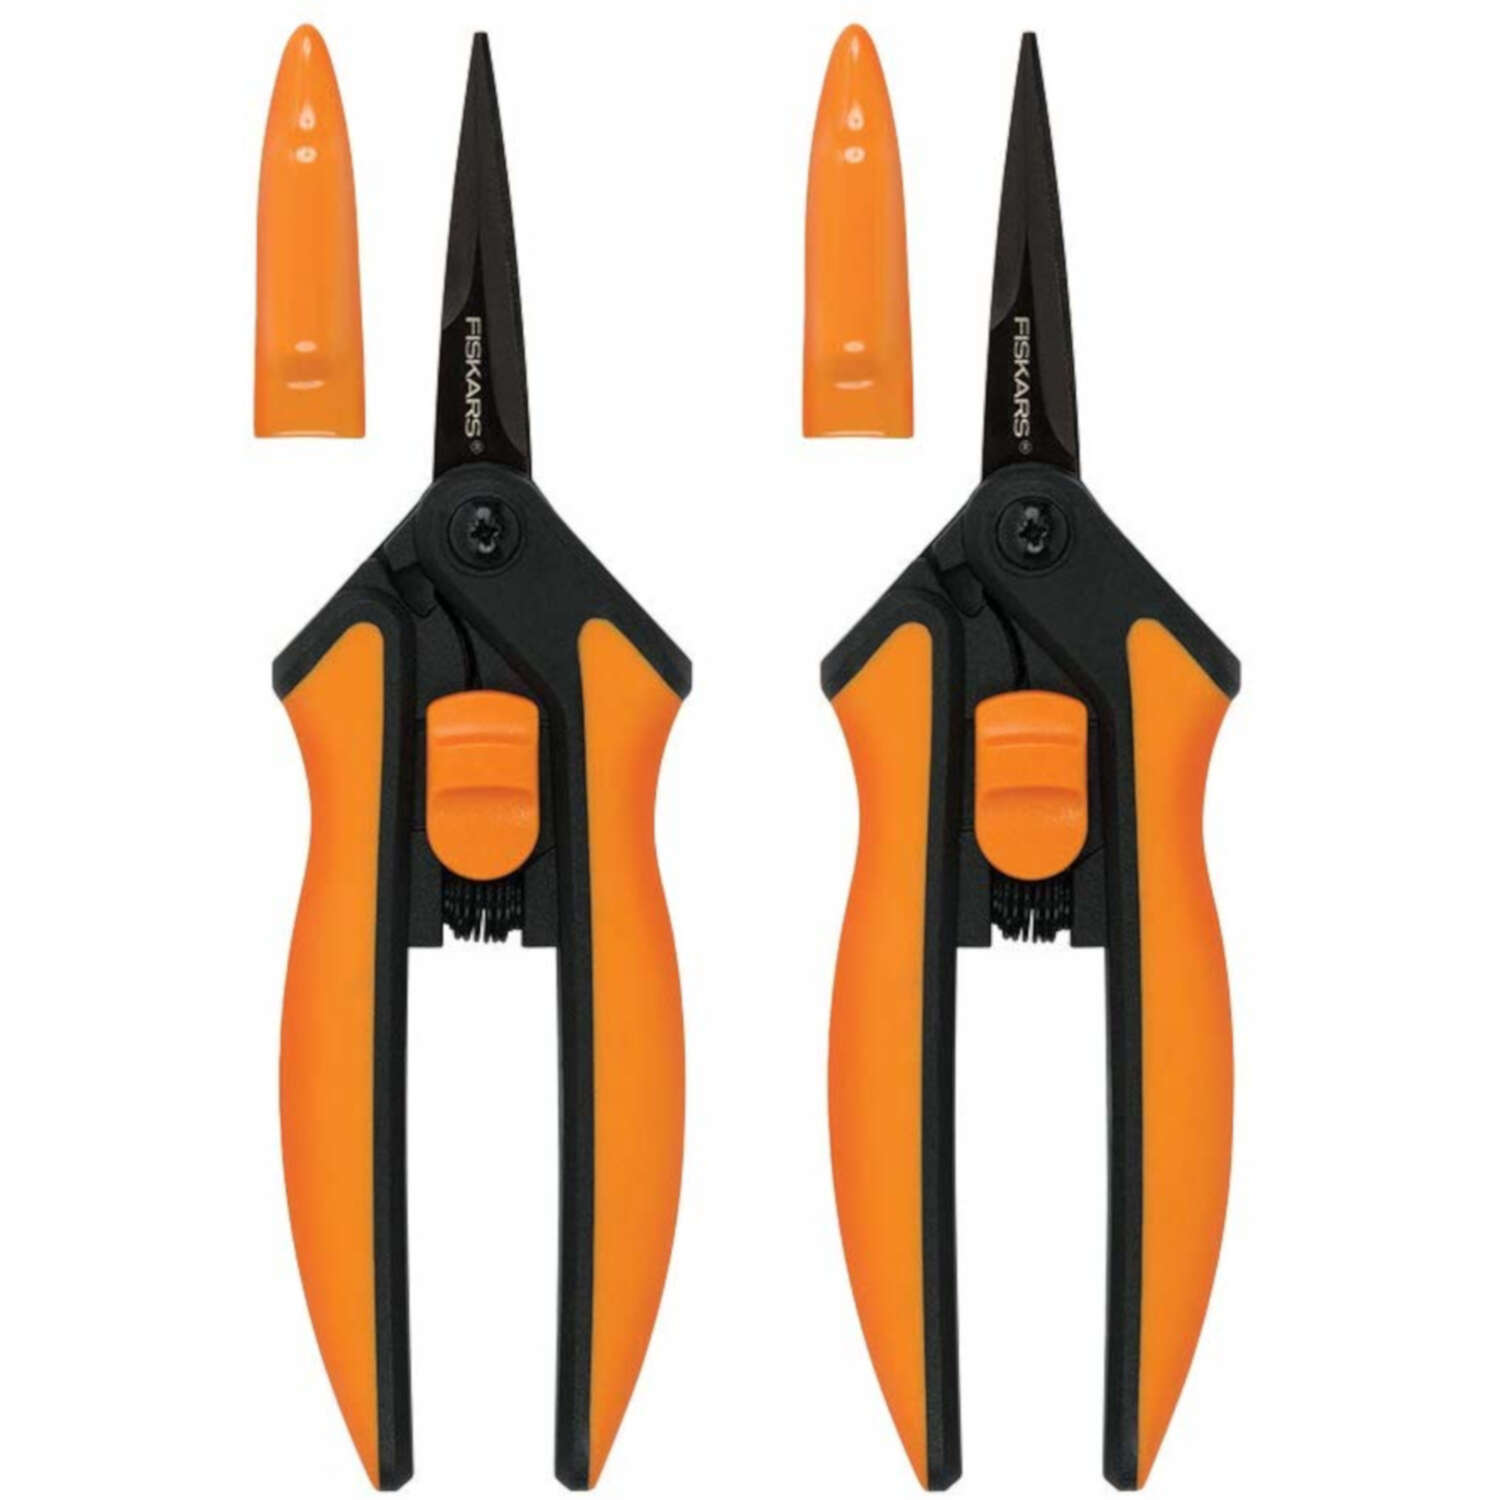 Fiskars  Softgrip  Stainless Steel  Straight Edge  Pruners